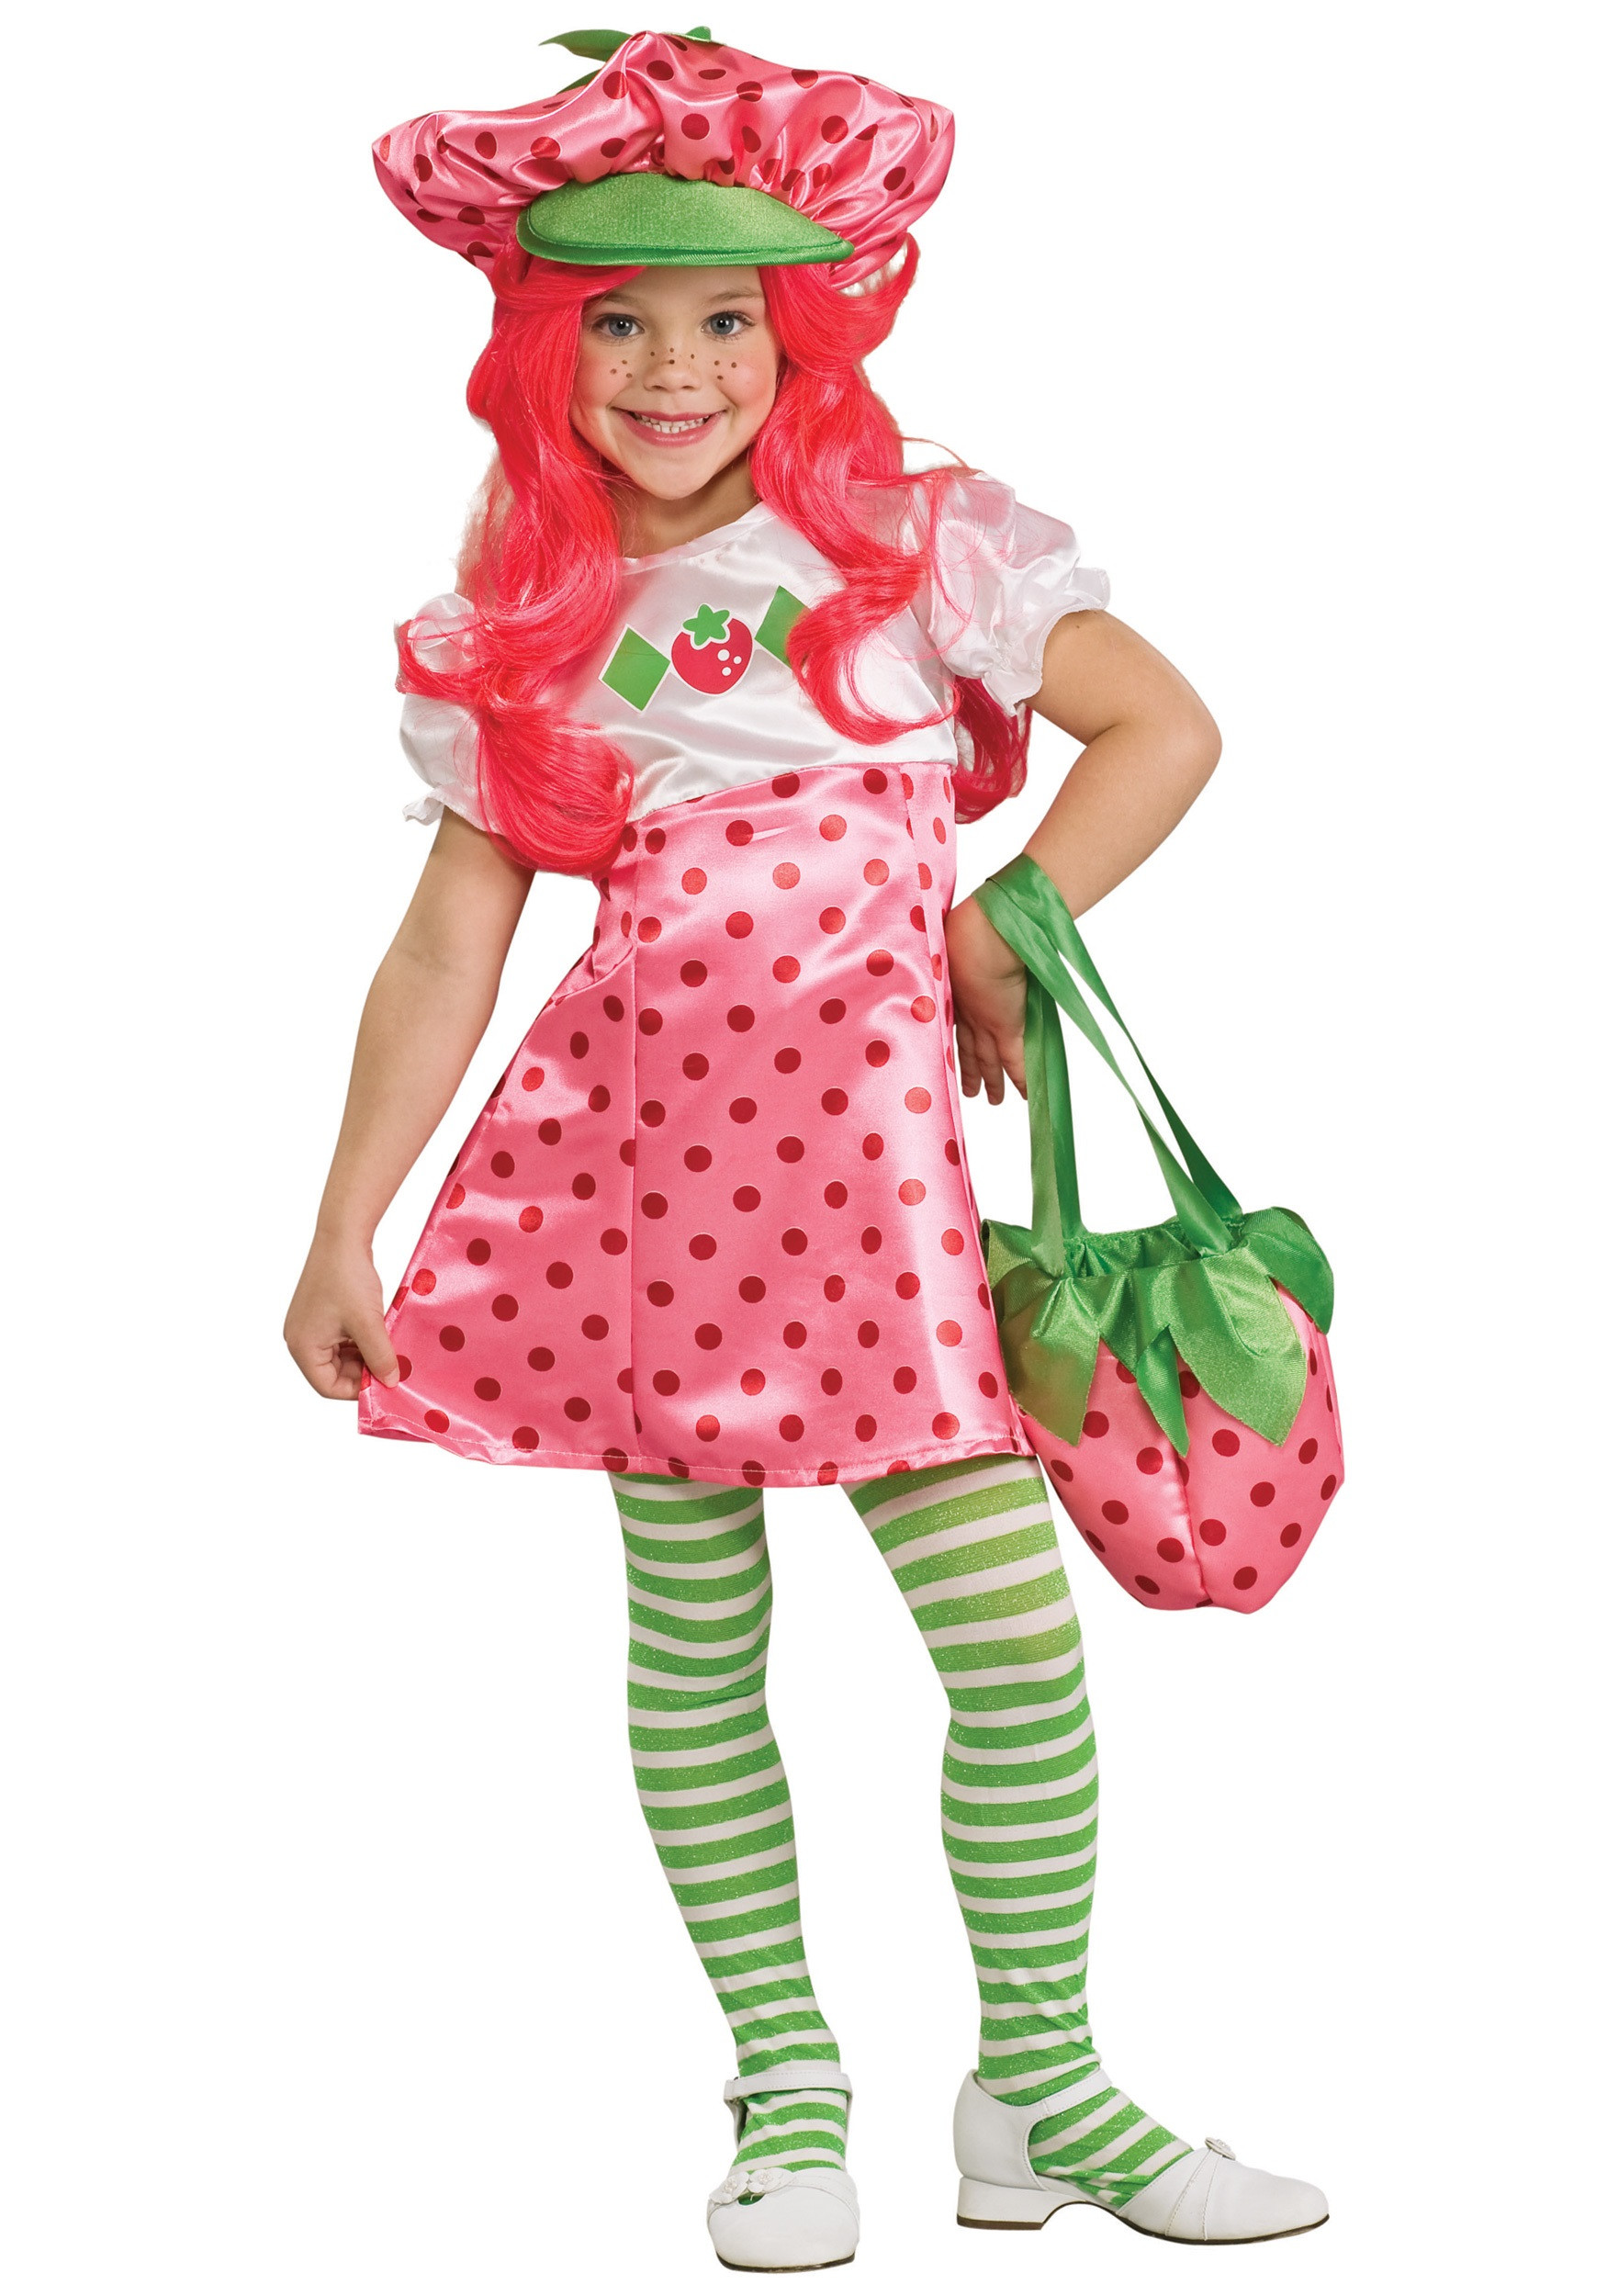 Strawberry Shortcake Halloween Costume  Child Strawberry Shortcake Costume